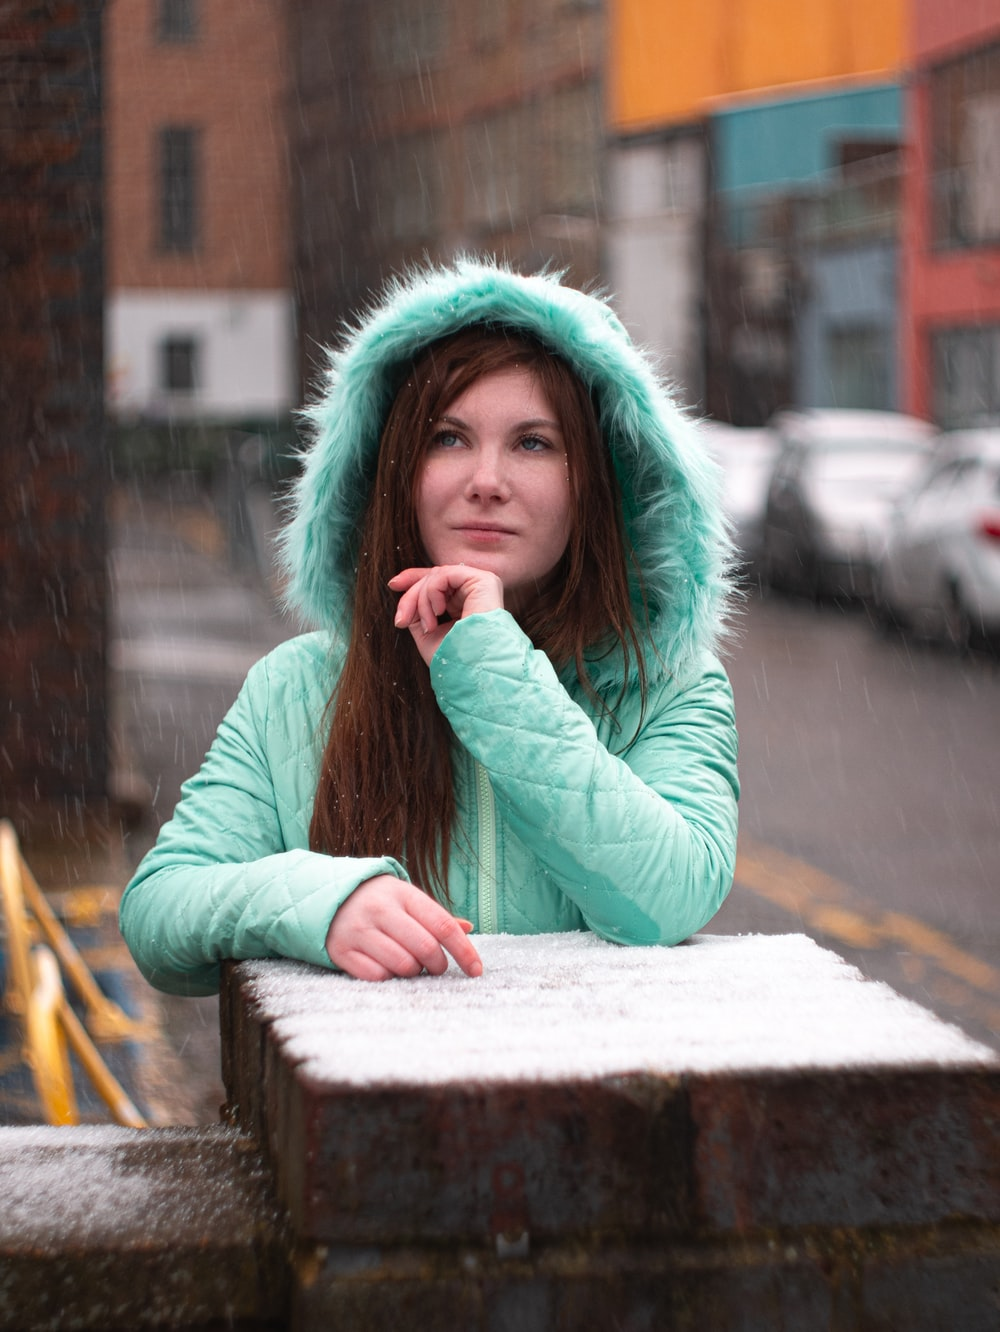 woman in teal hoodie sitting on brown wooden bench during daytime